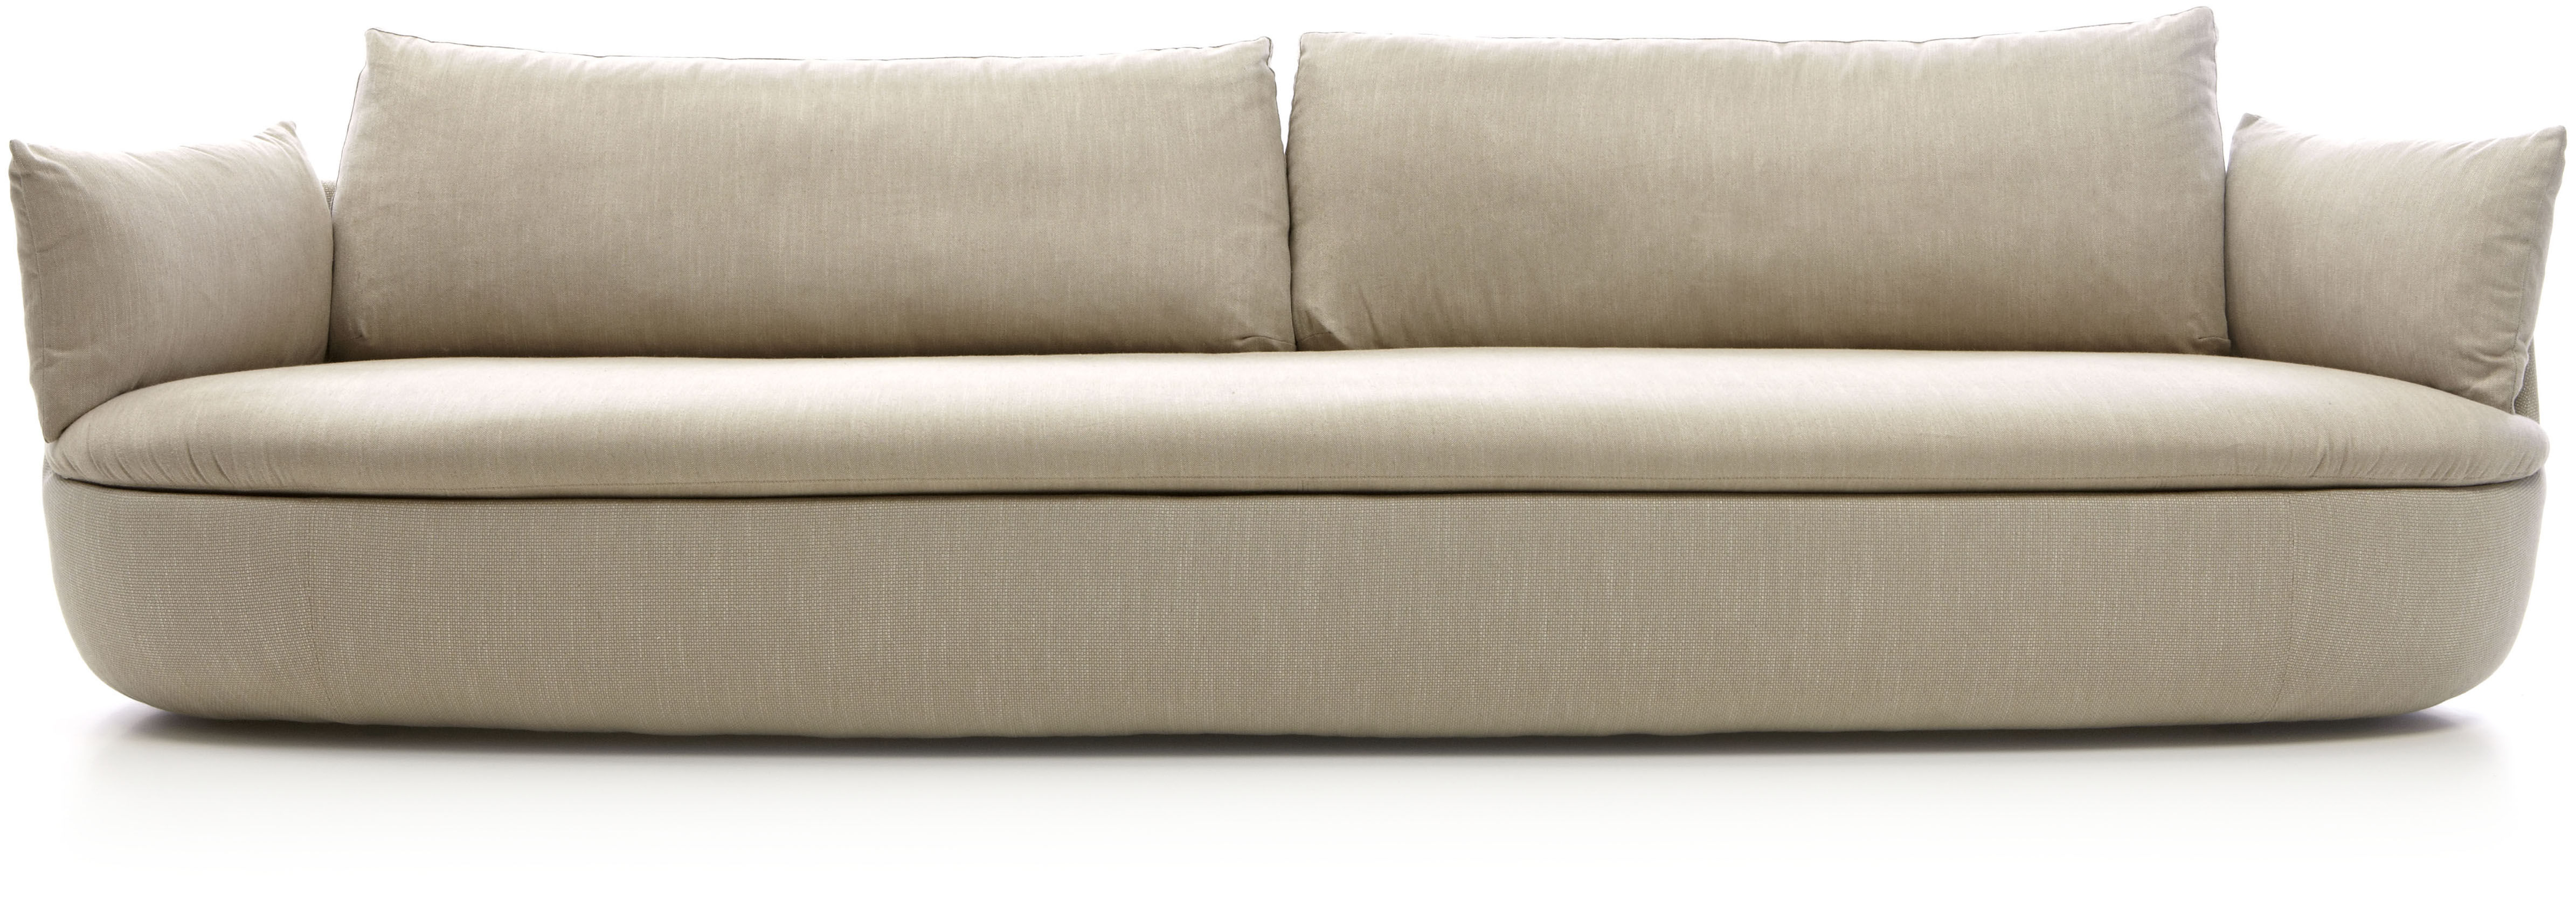 Furniture - Sofas - Bart XL Straight sofa by Moooi - Light brown - Fabric, Foam, Wood